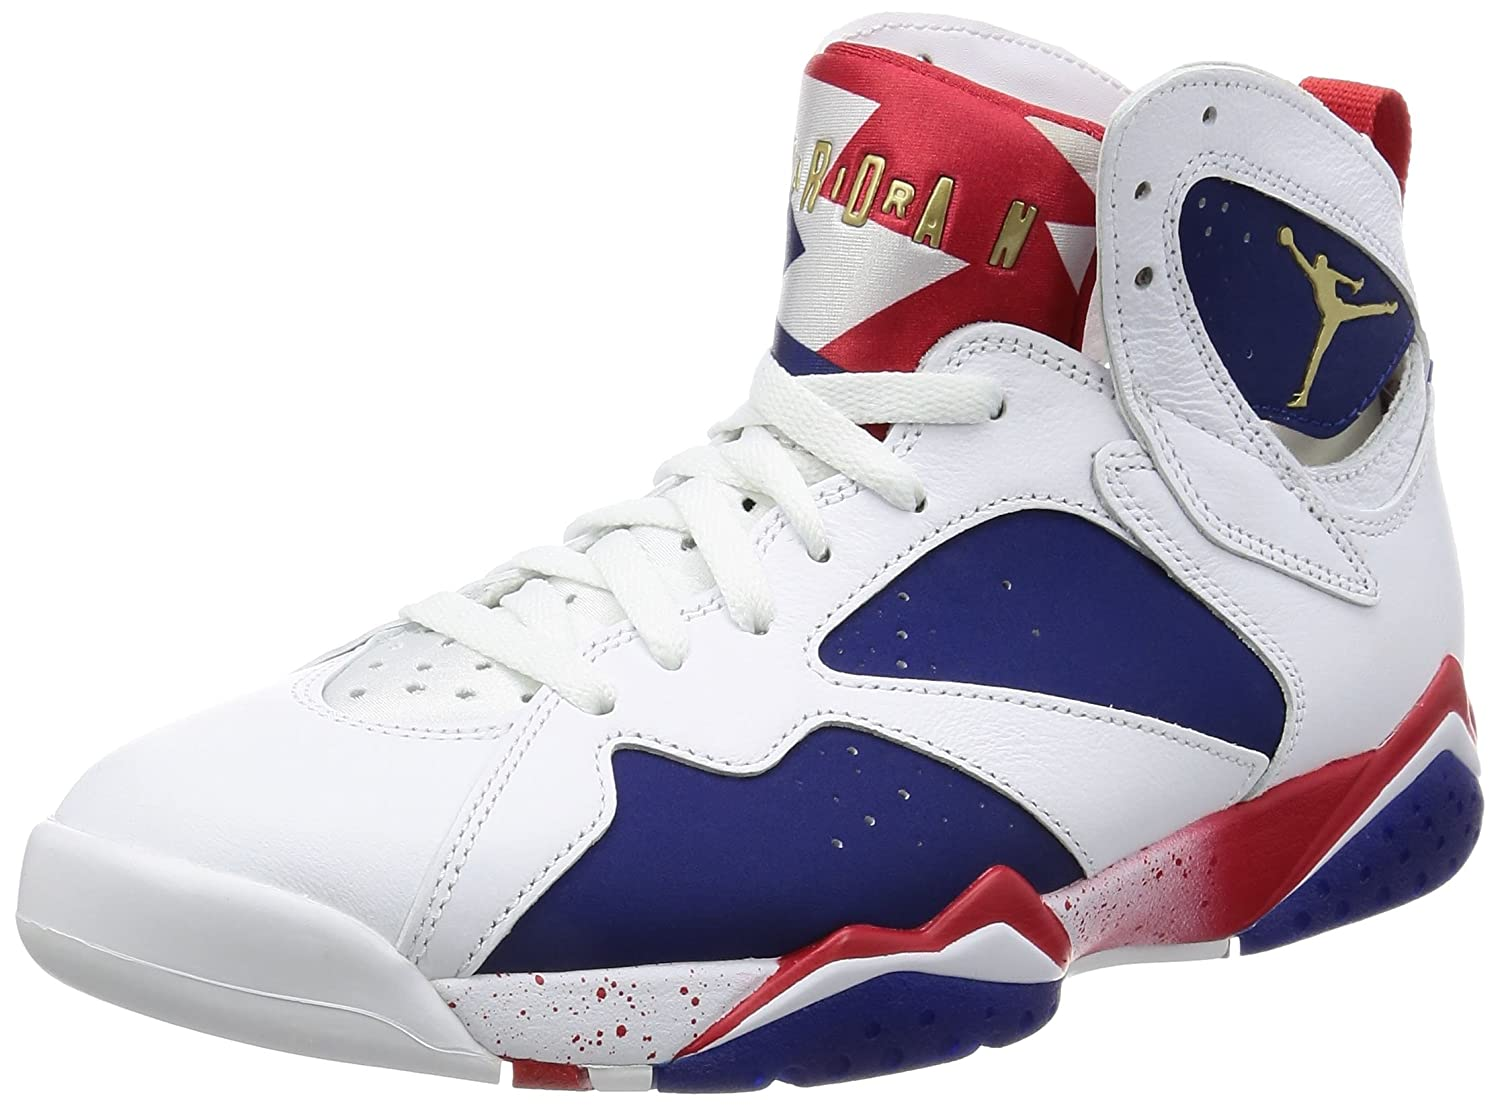 lowest price 5d401 b7c7a Nike Mens Air Jordan 7 Retro Tinker Alternate White/Metallic Gold-Deep  Royal Leather Size 12